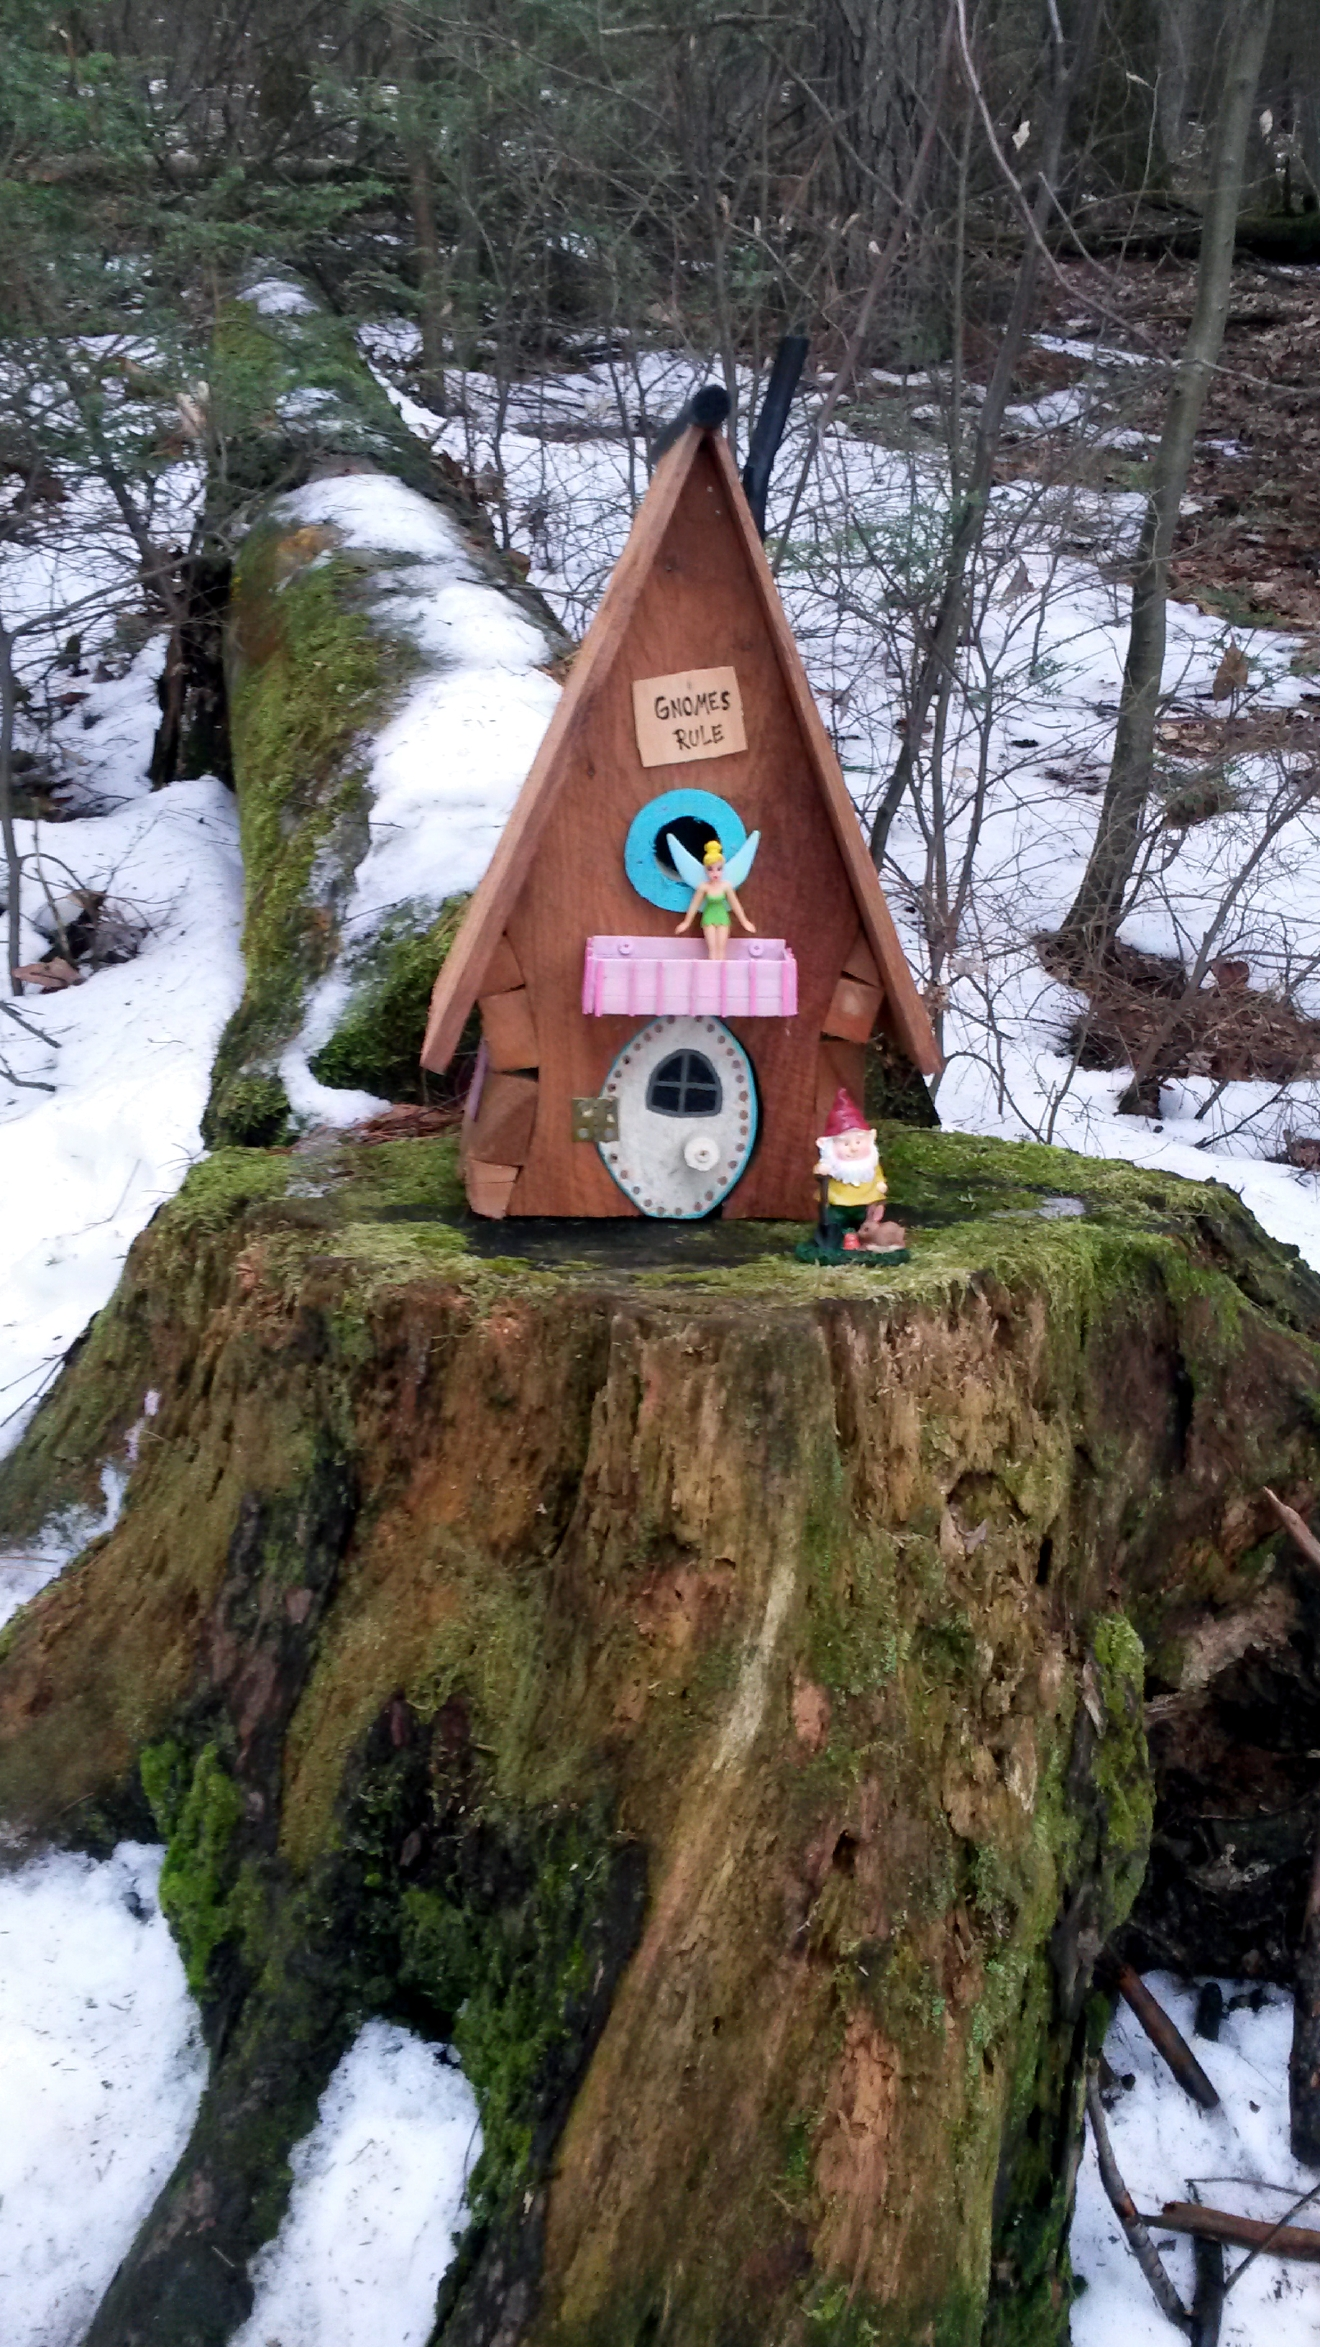 This Feb. 21, 2016, photo shows one of several gnome homes along Fisherman's Trail in Little Buffalo State Park in Newport, Pa. Park Manager Jason Baker told the Pennlive.com that he gave the OK originally for for Steve Hoke to create the mini houses, but it was later decided the homes could affect wildlife habitat. Hoke removed the little abodes Monday after being told he had until Feb. 29. (Deb Kiner/PennLive.com via AP) MANDATORY CREDIT; MAGS OUT